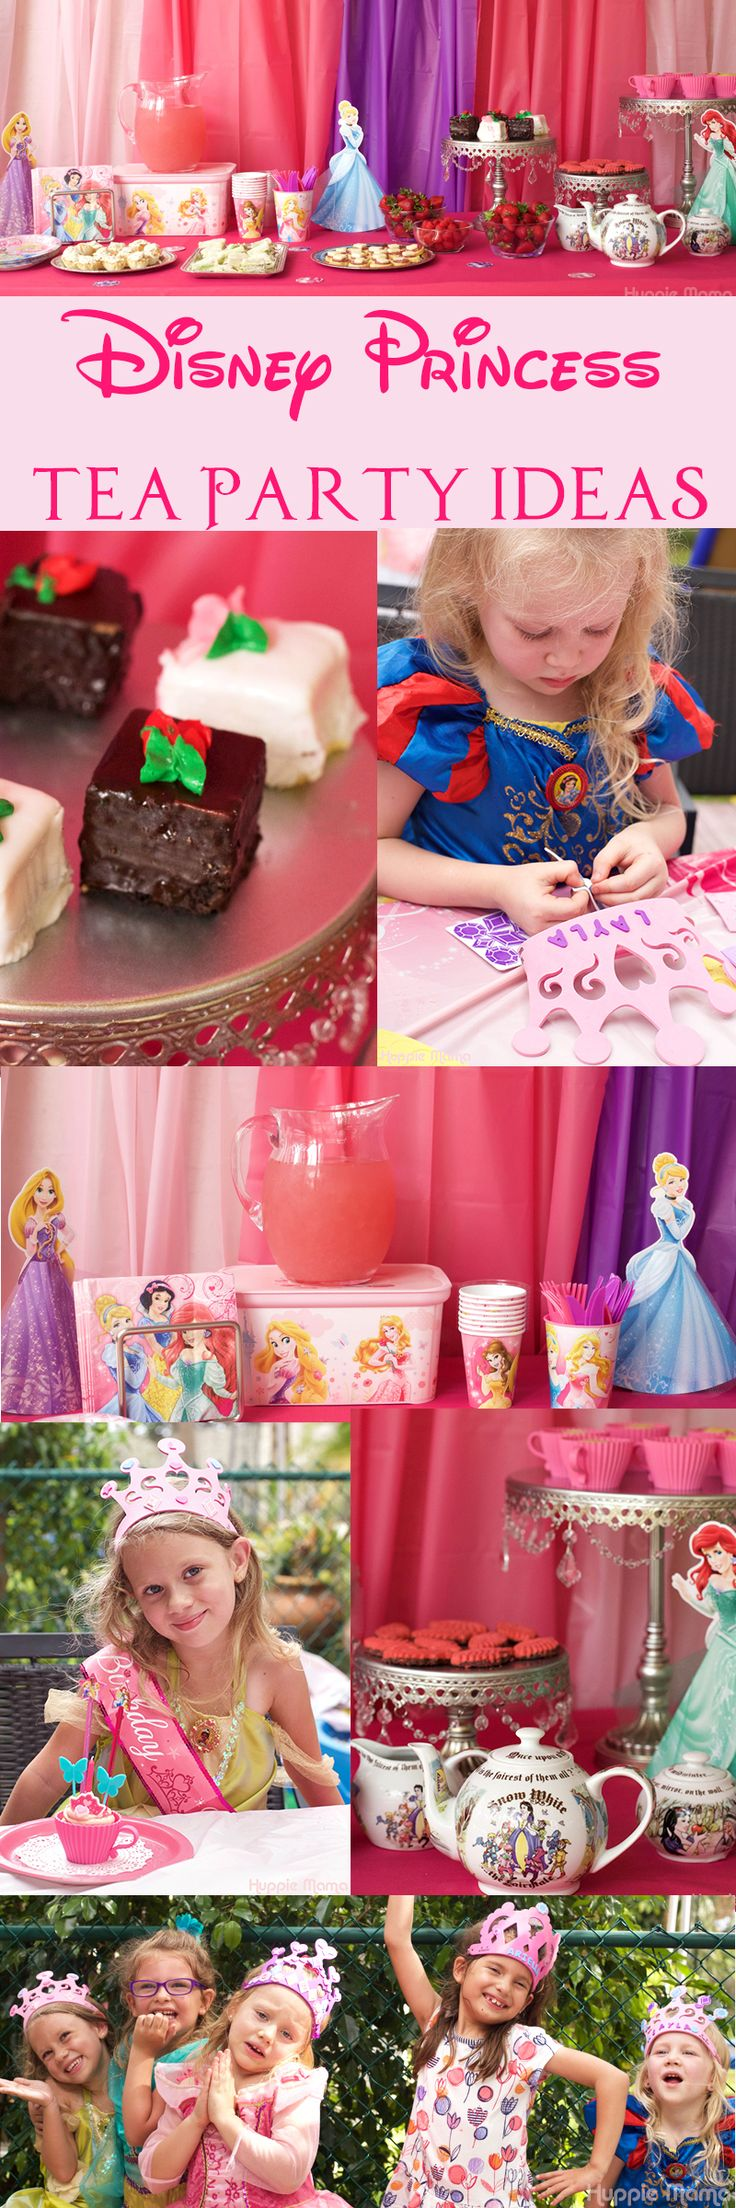 Disney Princess Party #BDayOnBudget ad @Walmart